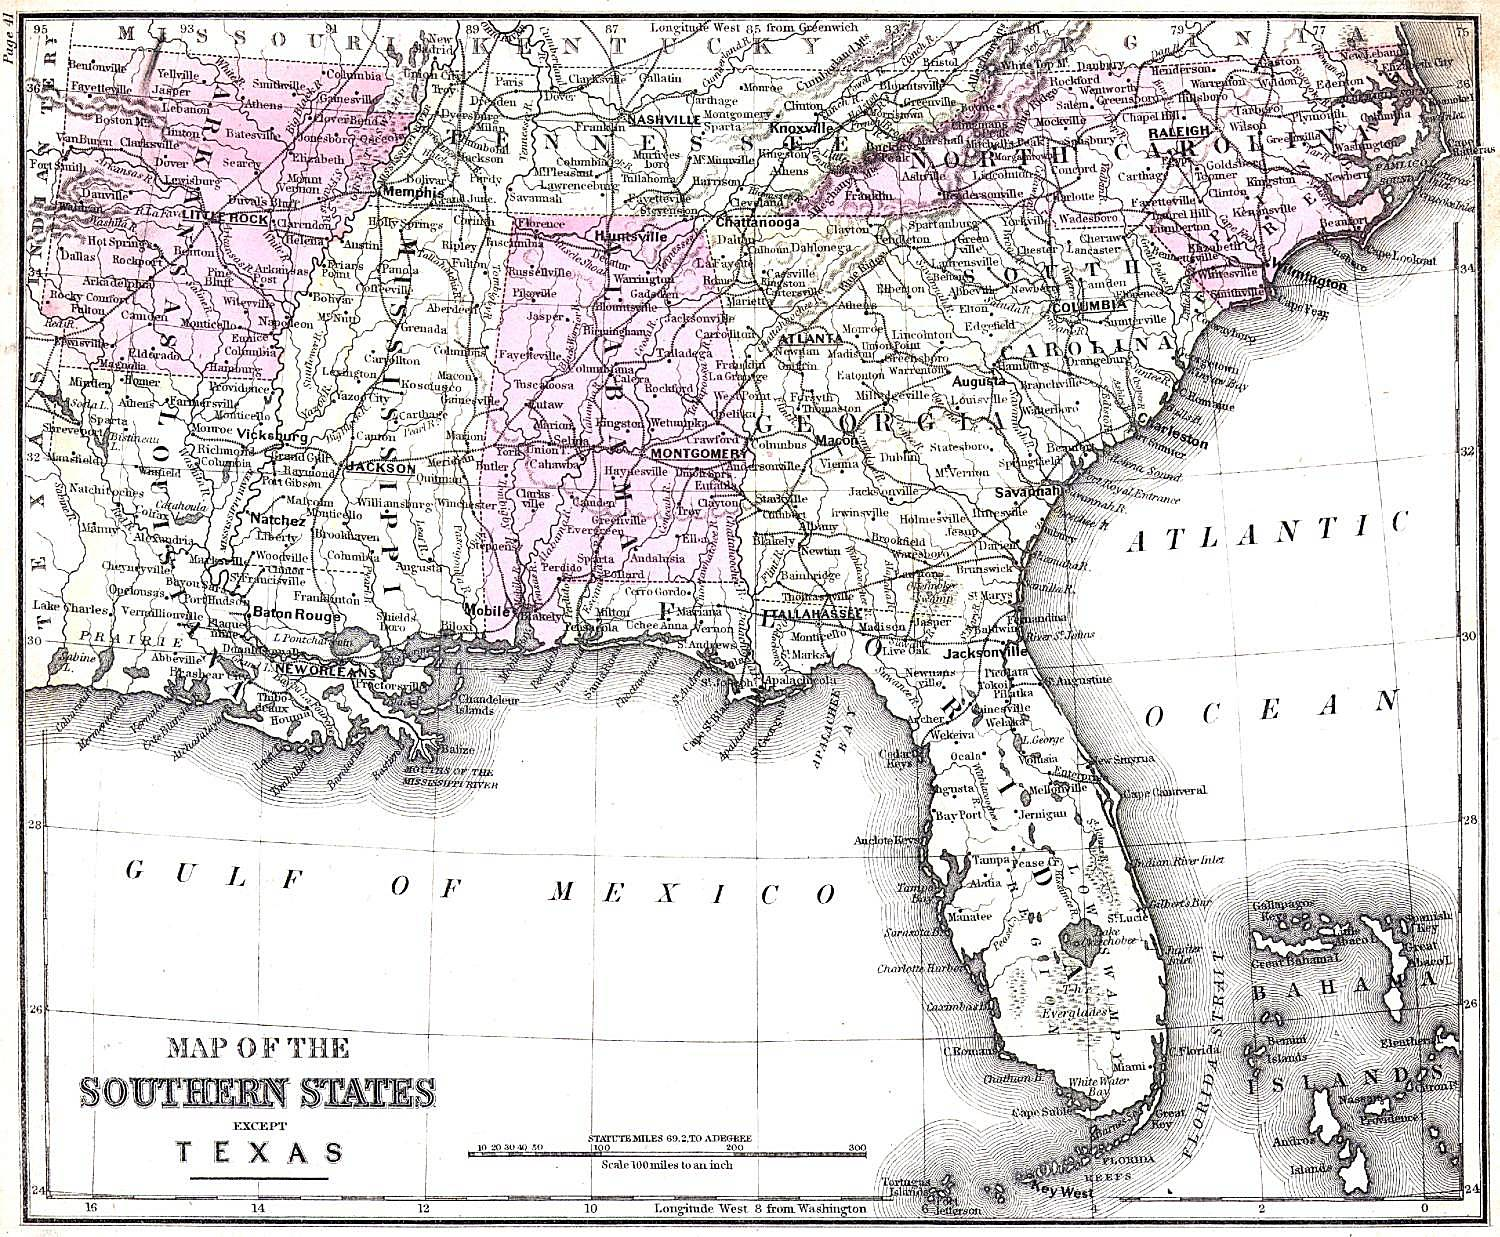 Alabama Maps. Alabama Digital Map Library. Table of Contents. United ...